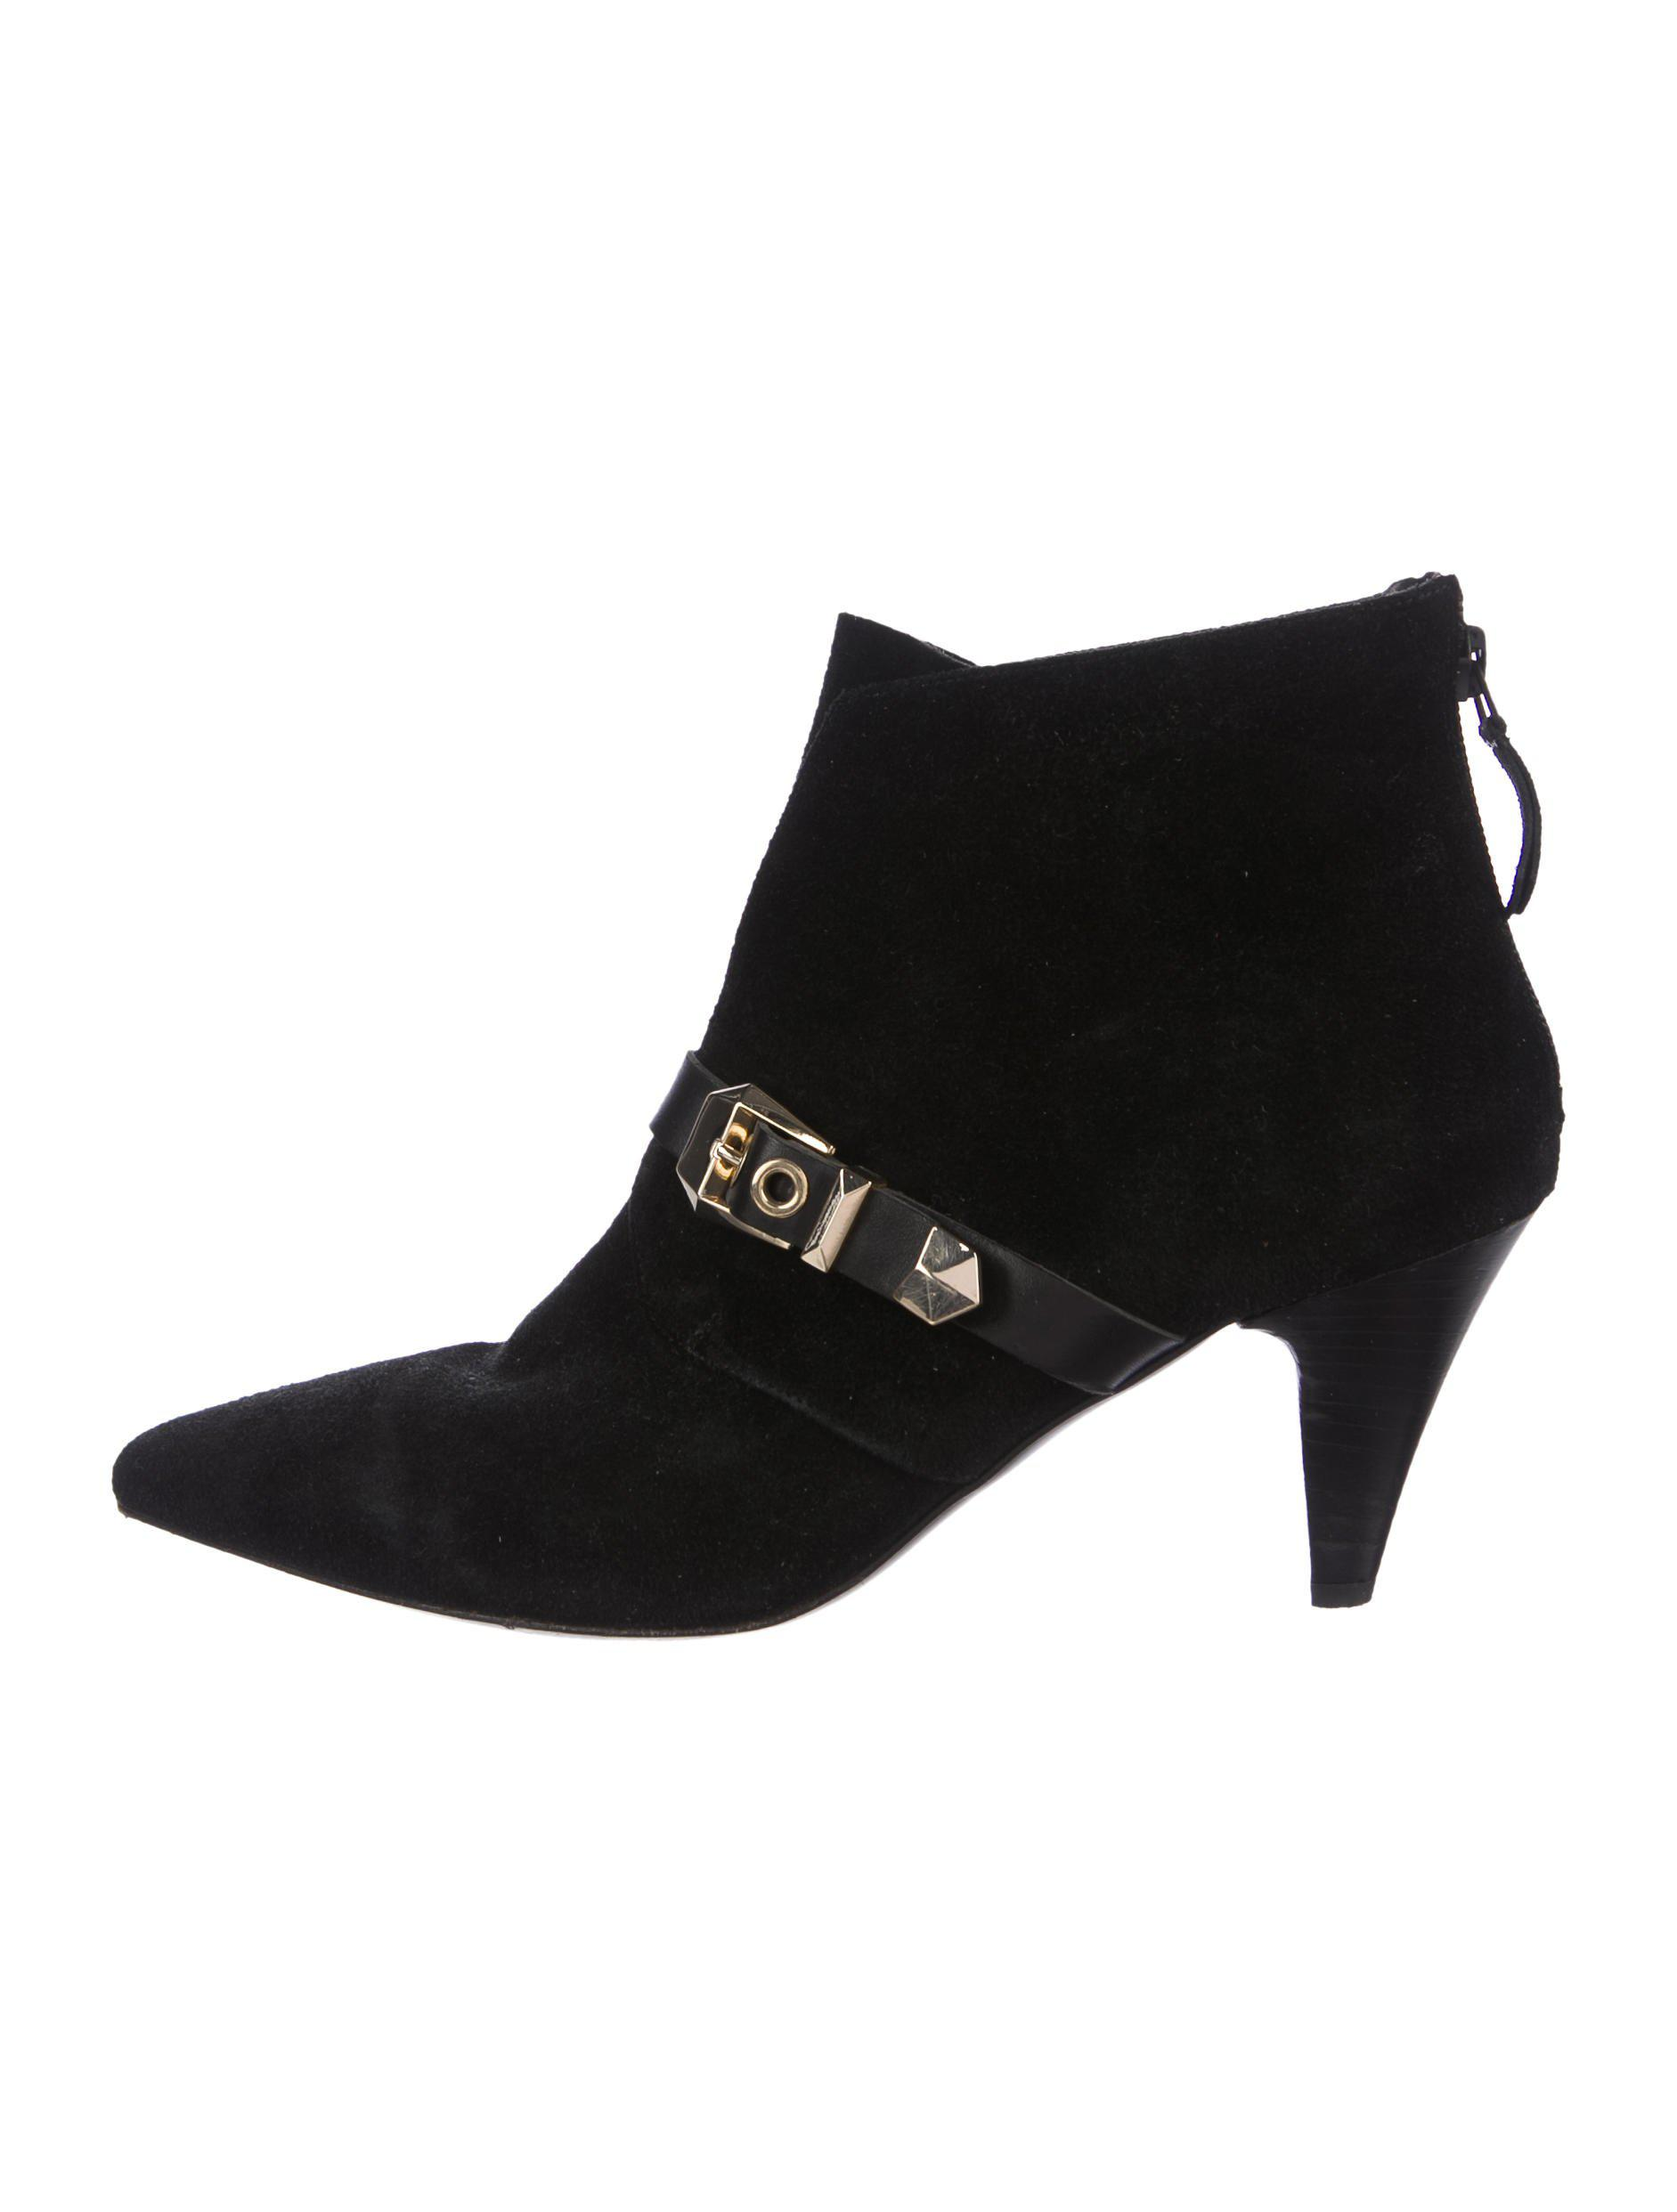 Sandro Suede Pointed-Toe Ankle Boots clearance latest zu9Mrun